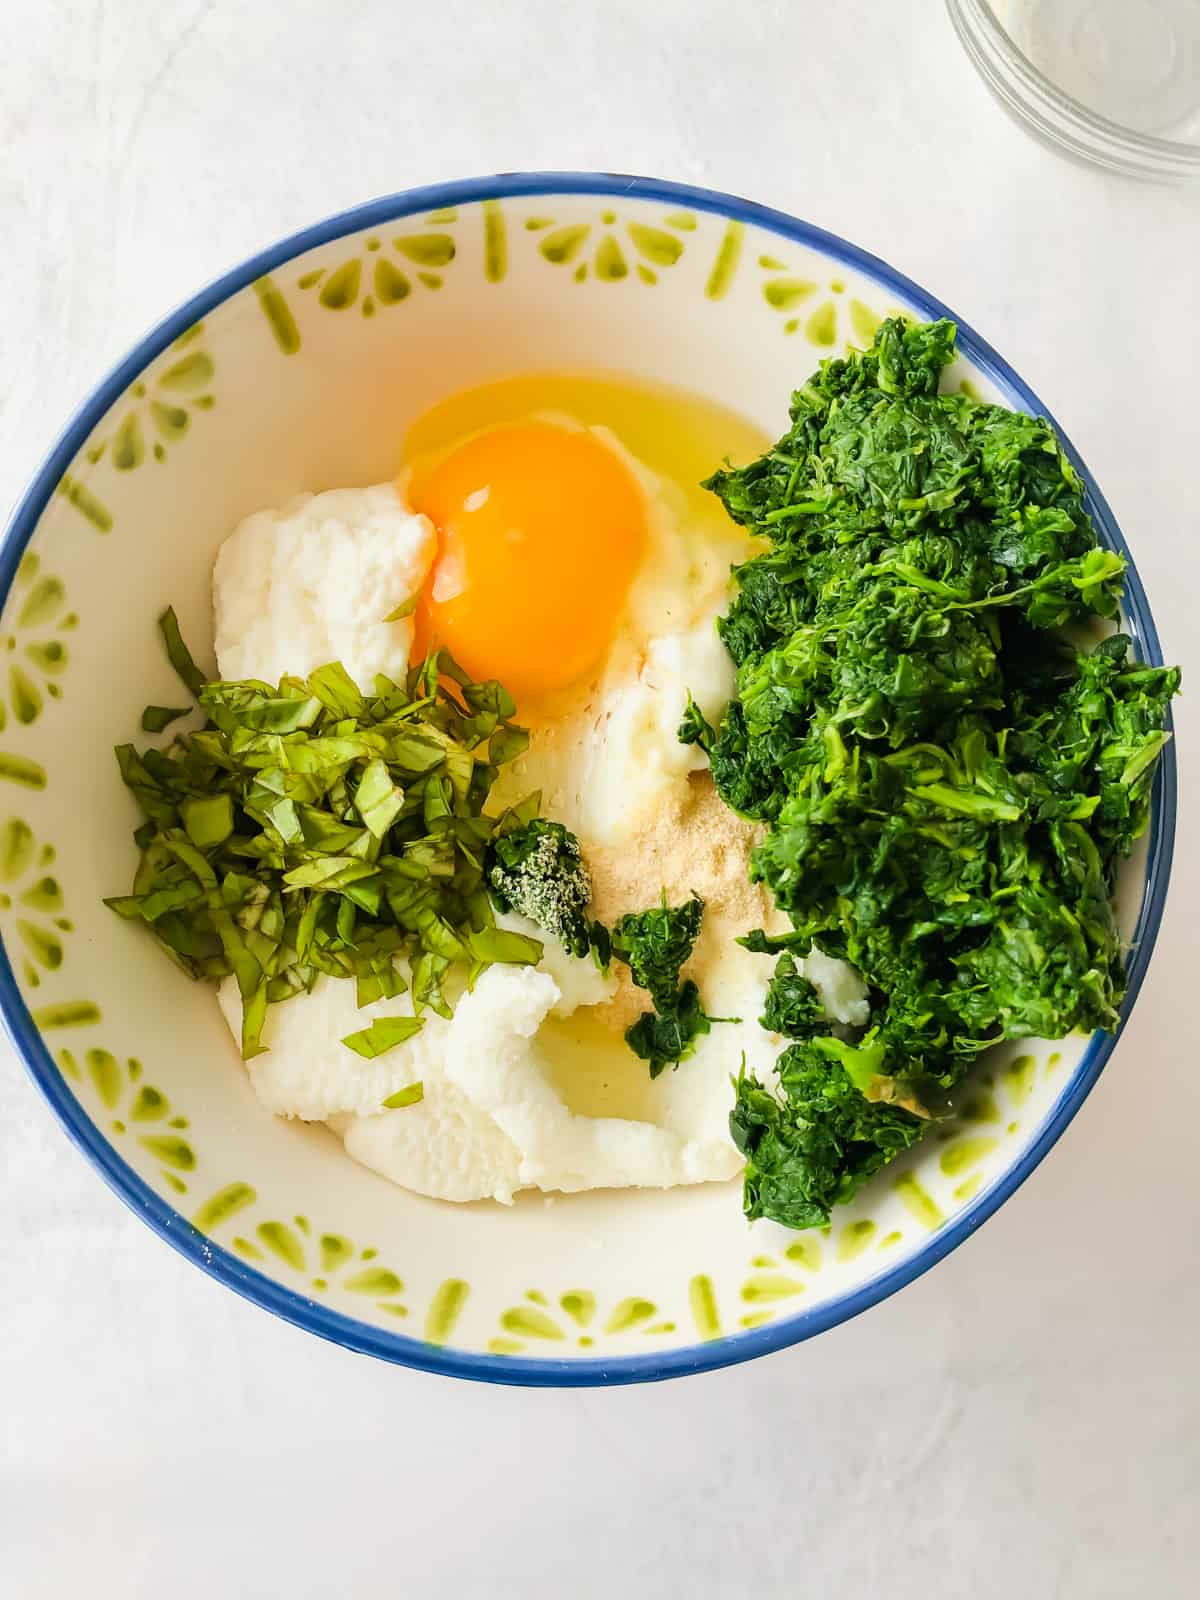 ricotta, spinach, egg in a bowl